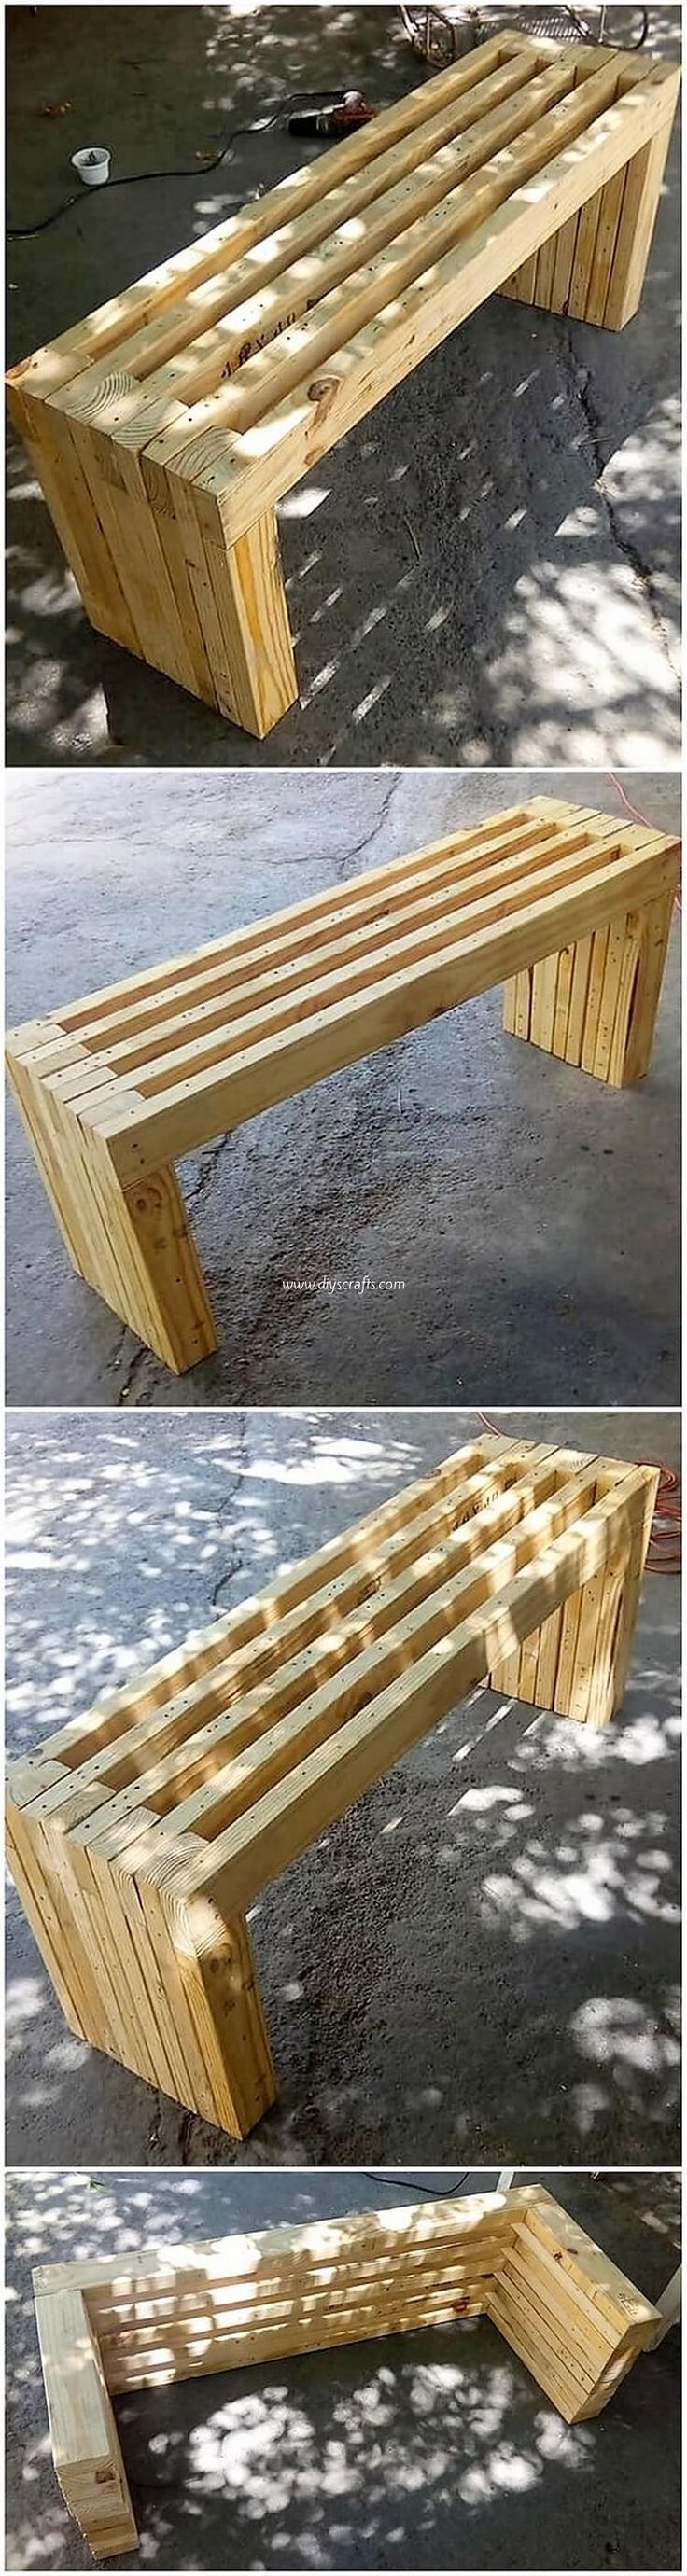 Charming DIY Crafting Ideas with Shipping Pallets